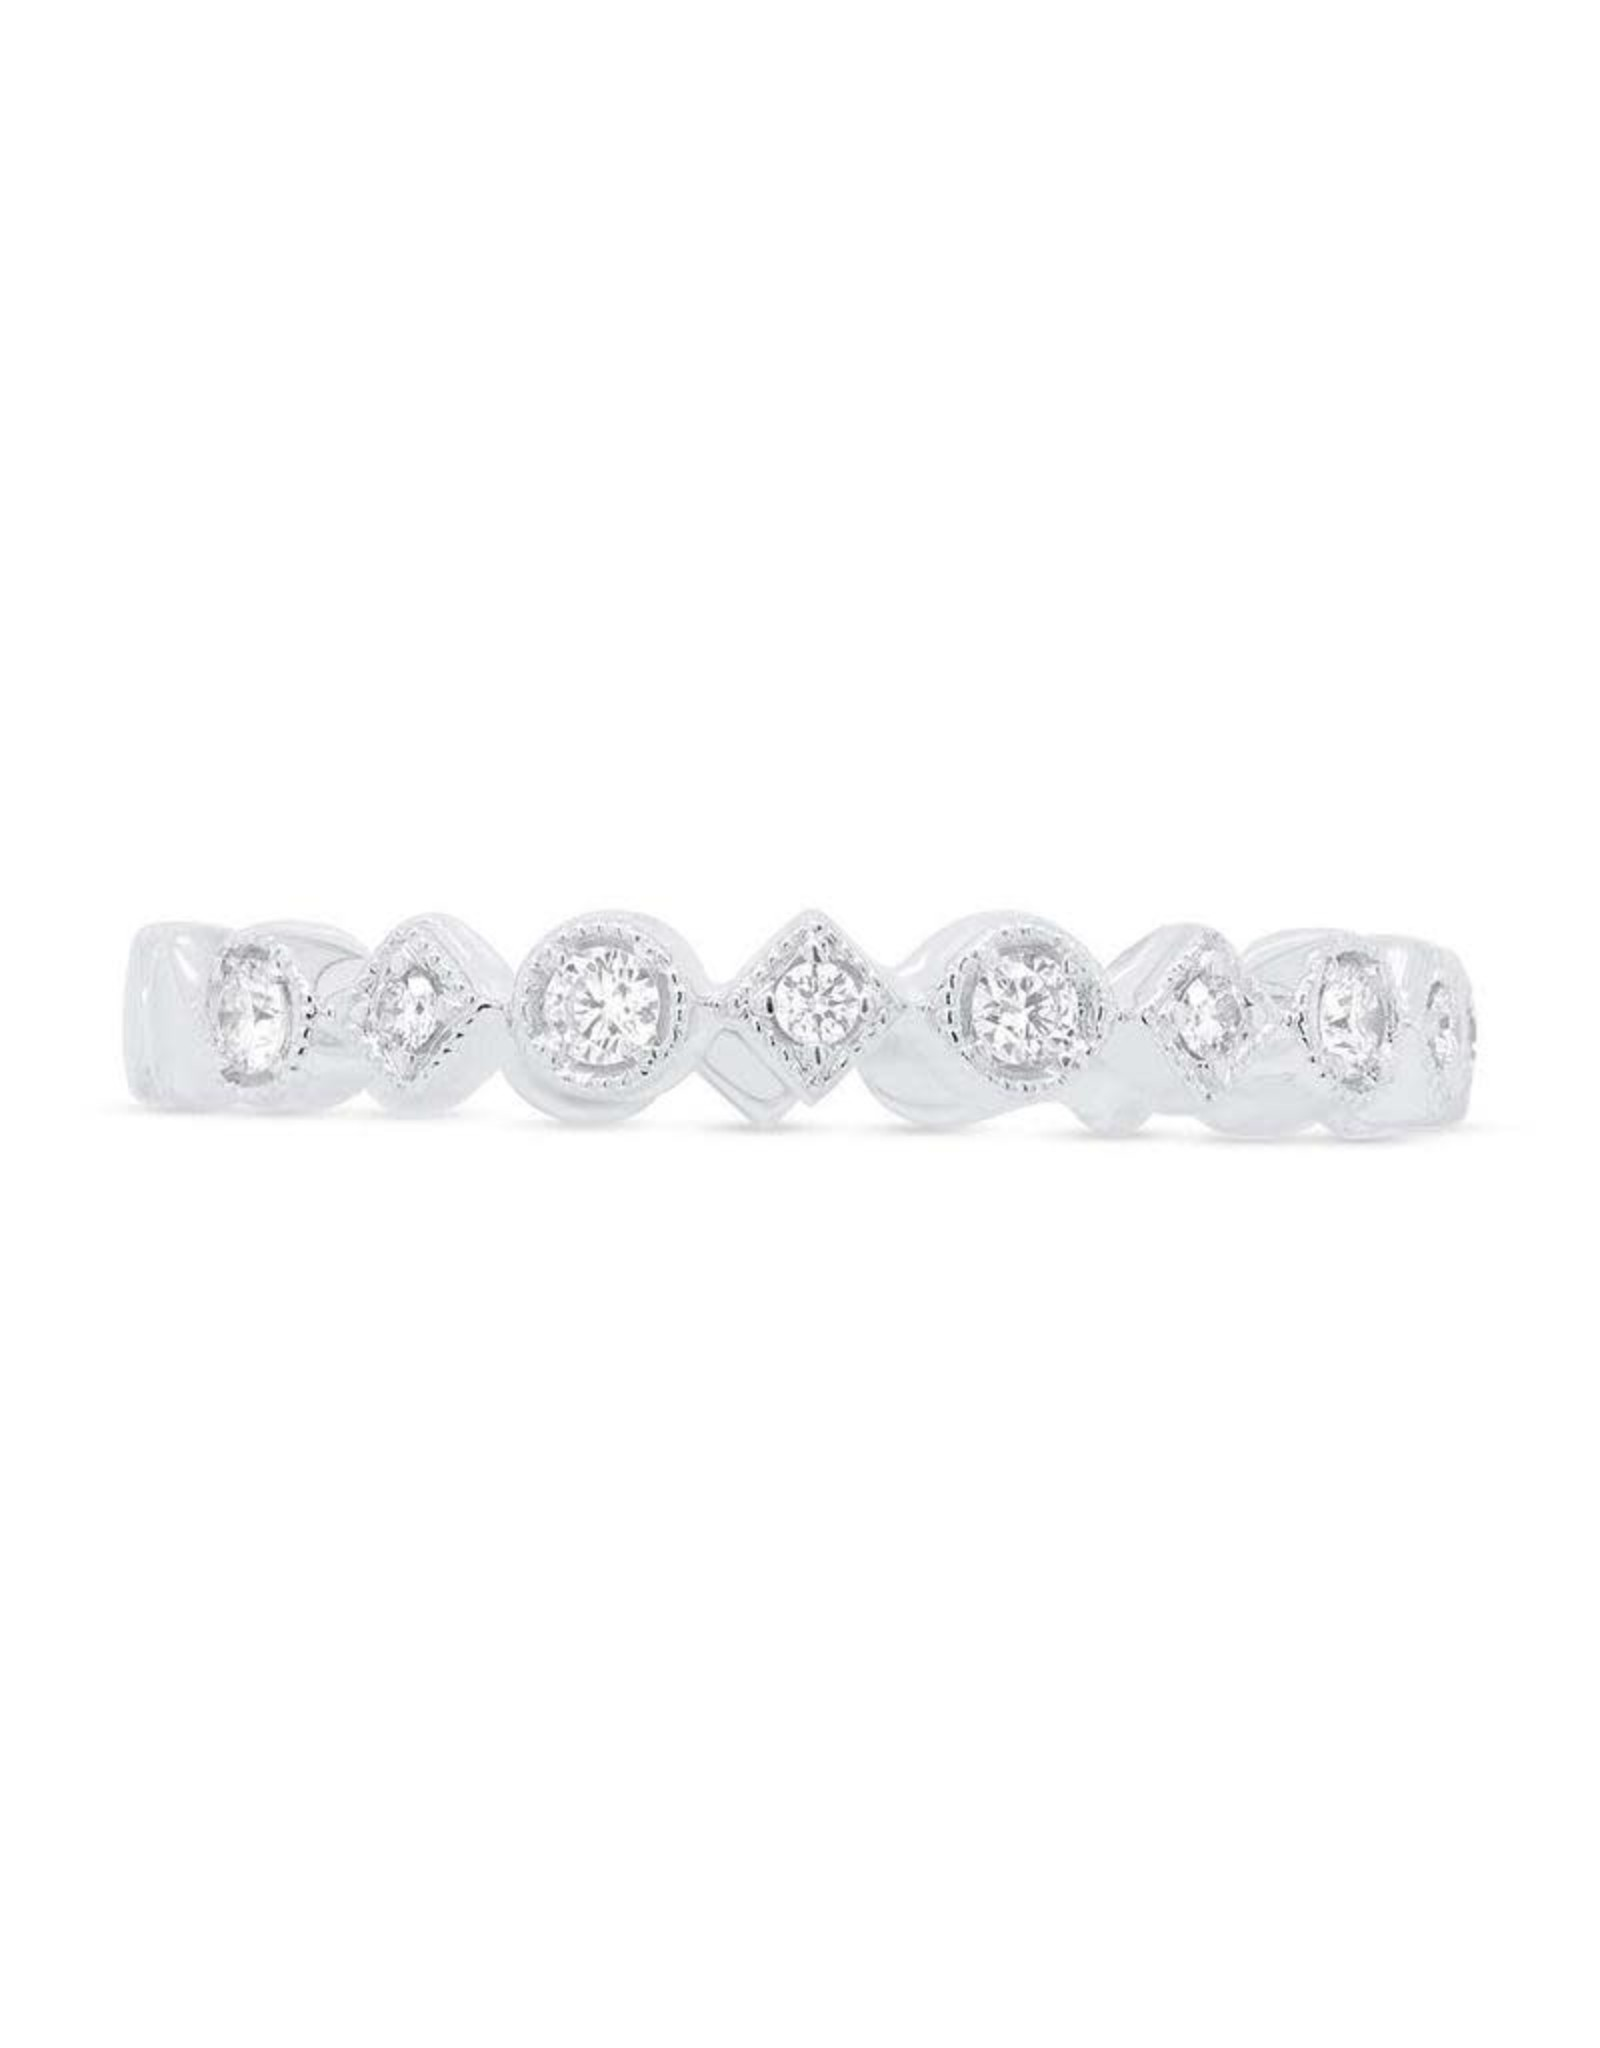 14K White Gold Circle-Square Diamond Stackable Ring, D: 0.14ct